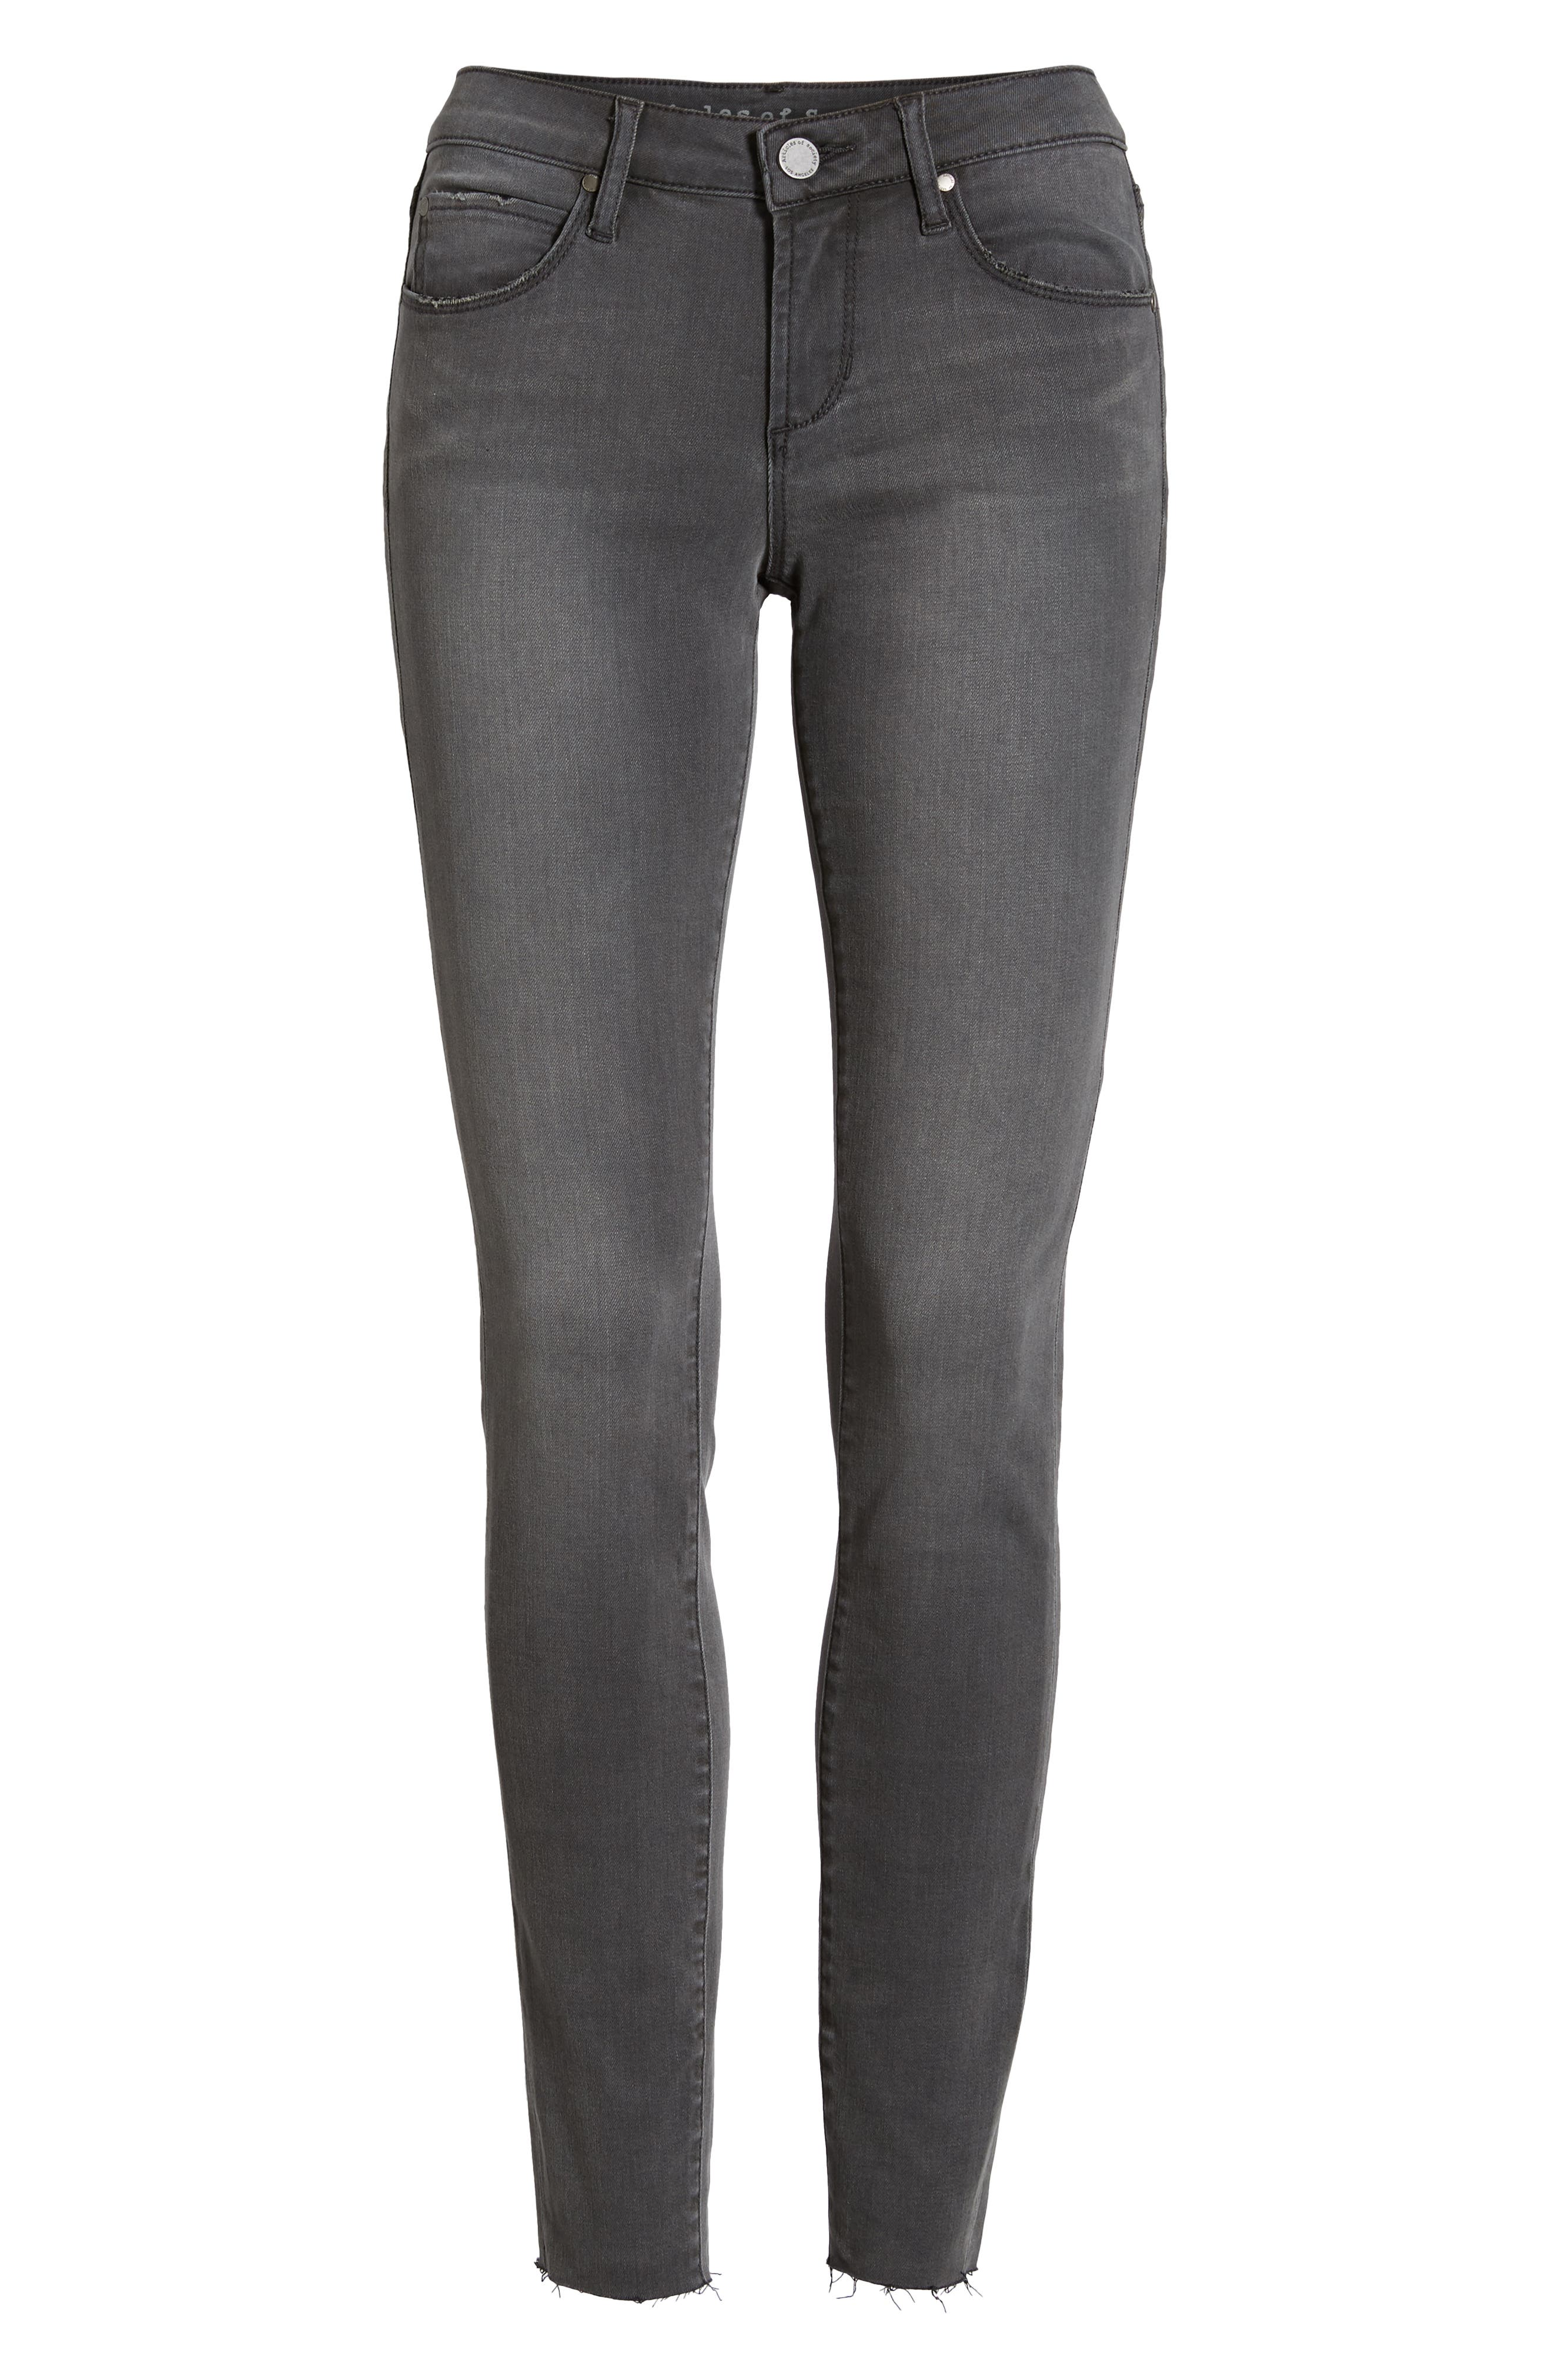 Sarah Cutoff Skinny Jeans,                             Alternate thumbnail 7, color,                             HONOLULU